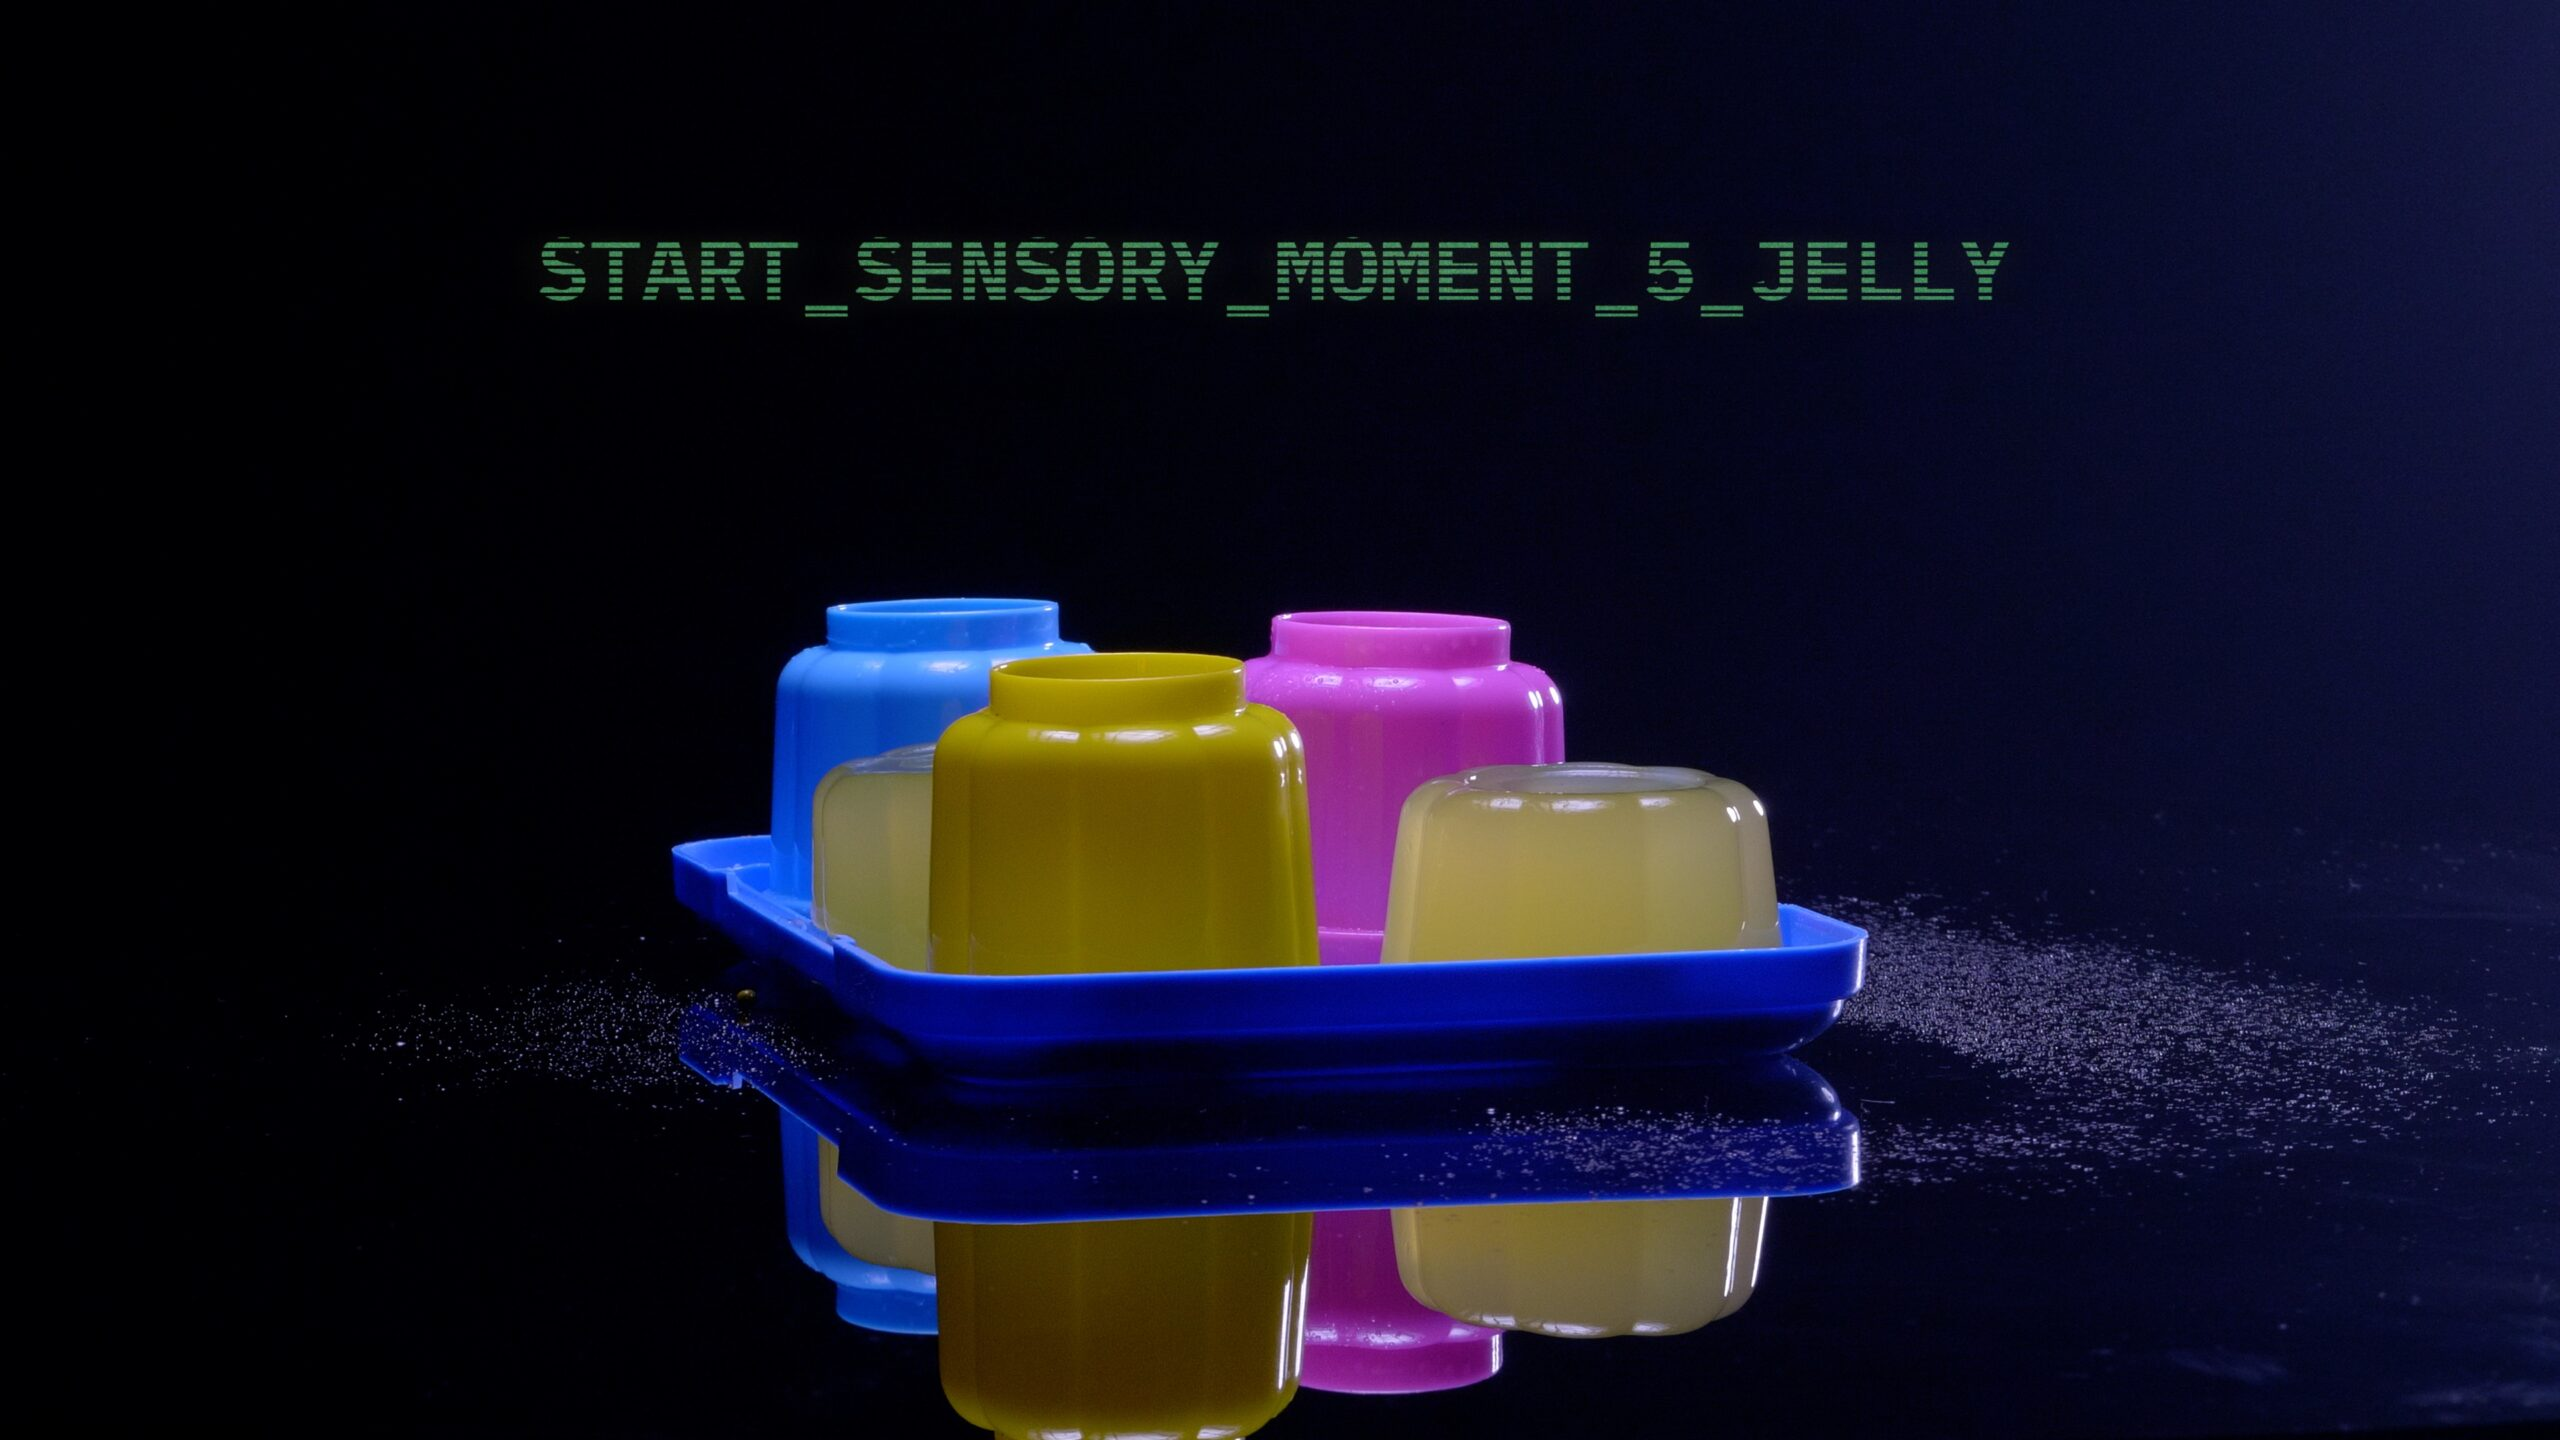 FOur colourful jelly moulds on a plastic tray in front of sci fi text which reads start sensory moment 5, Jelly